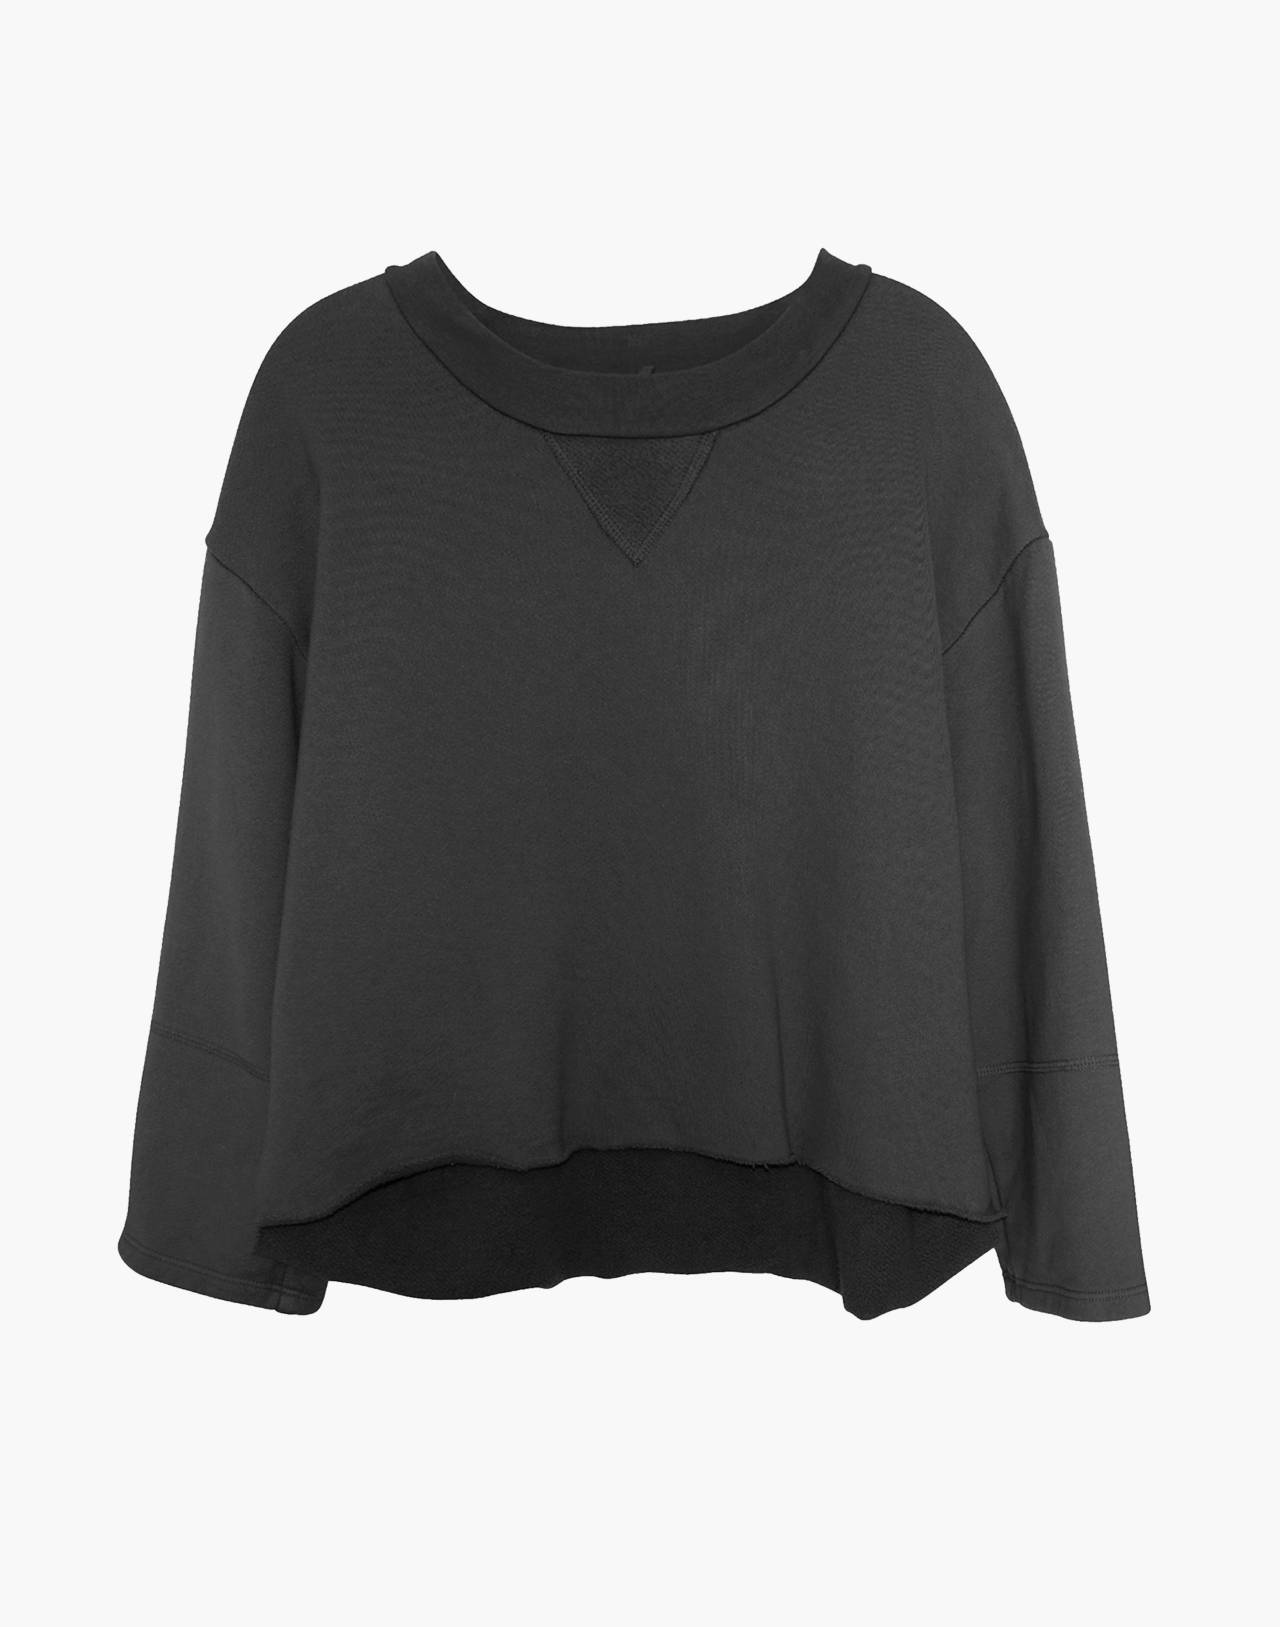 NICO NICO™ Morgan Fleece Pullover Sweatshirt in black image 1